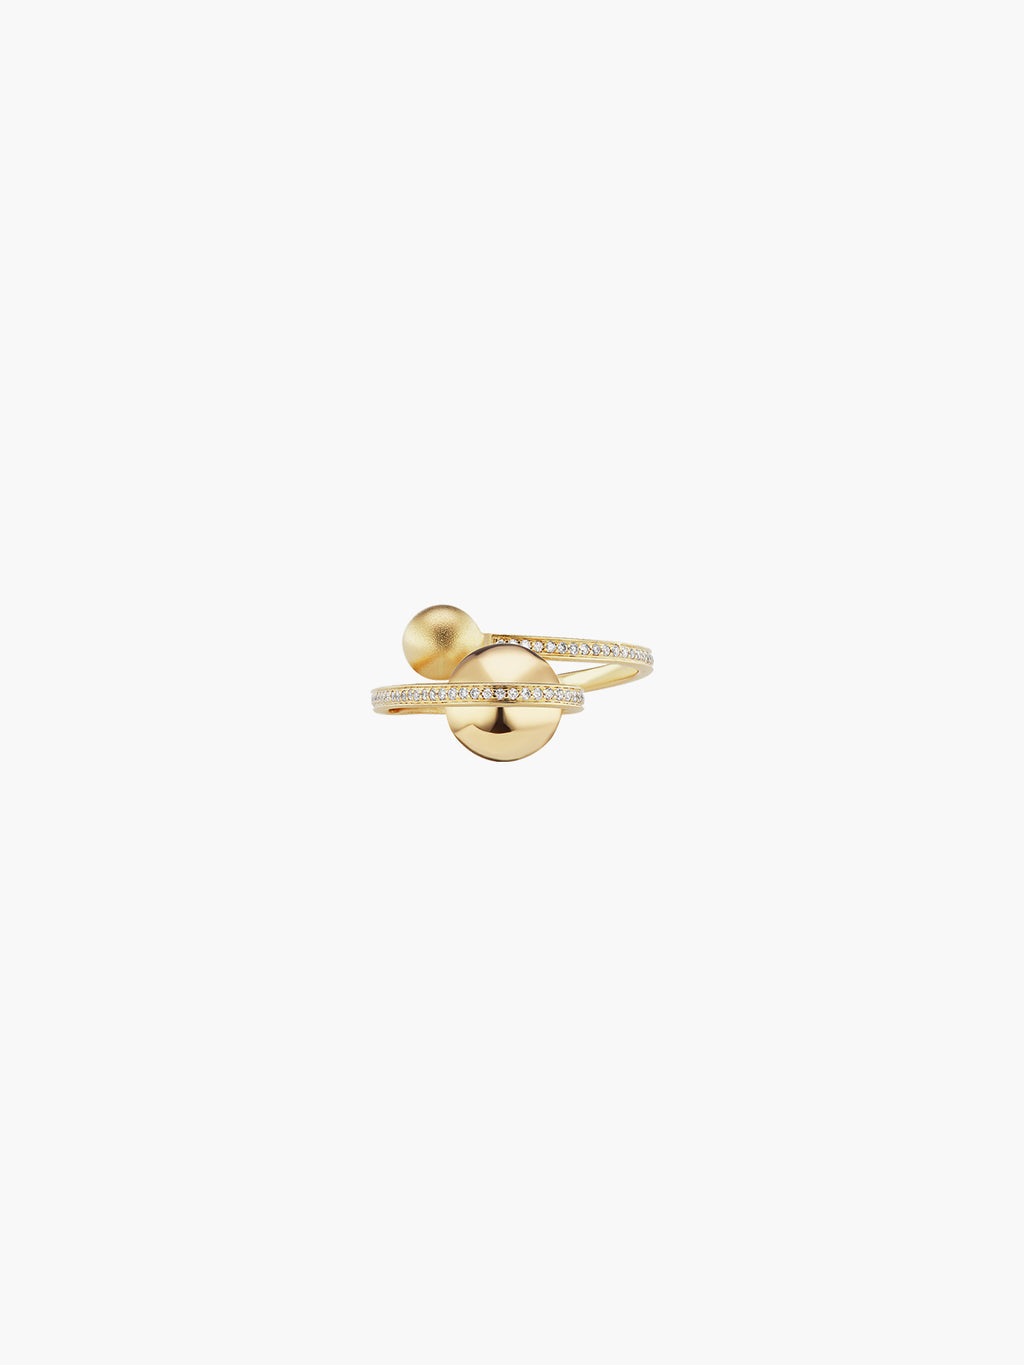 Boule D'Or Lariat Ring | High Polish